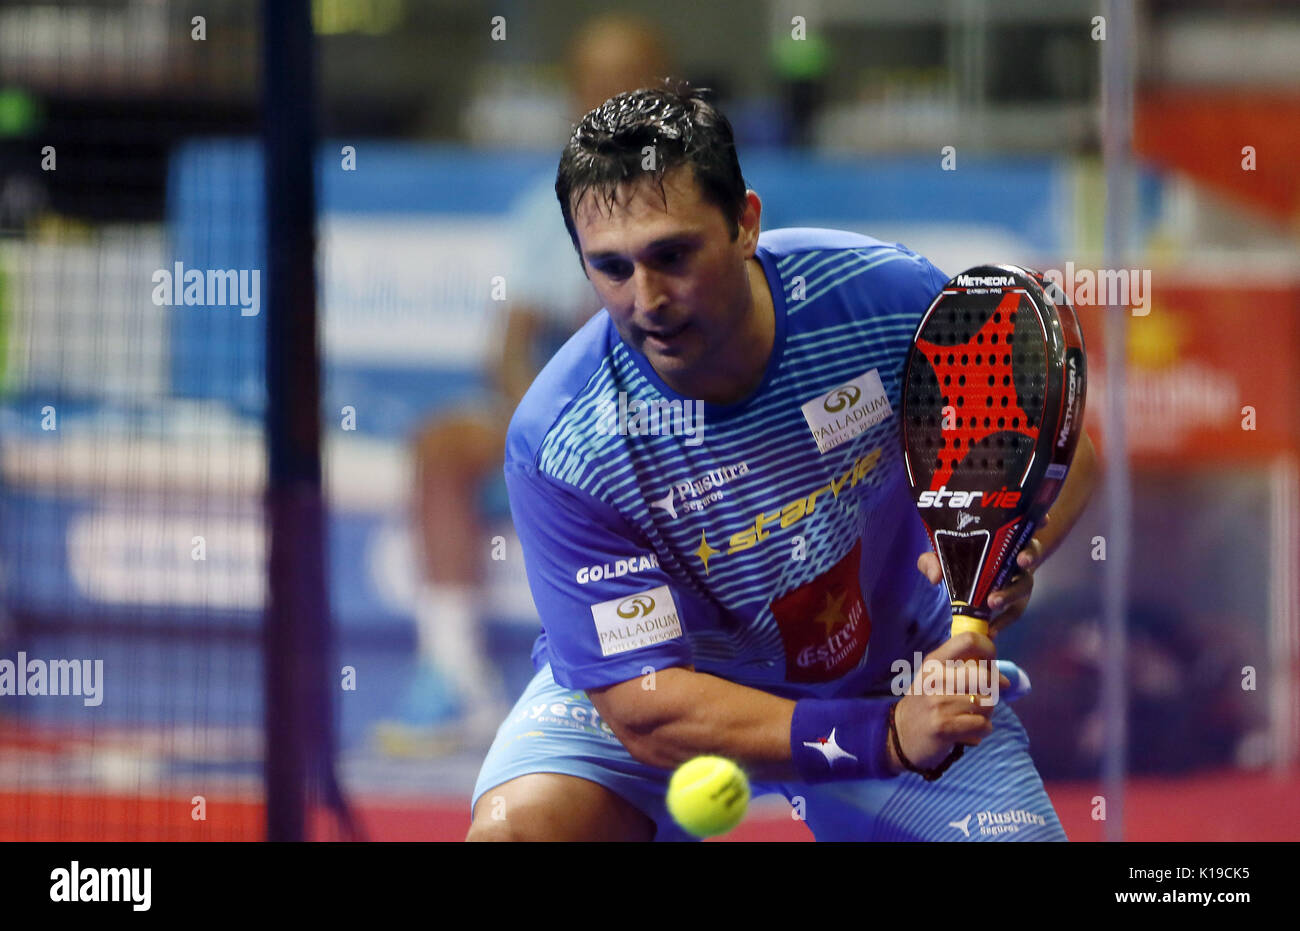 Padel player Matias Diaz in action during the Alicante Open 2017 men's semifinal, the sixth event of the professional circuit World Padel Tour, in Alicante, Spain, 26 August 2017. EFE/Manuel Lorenzo - Stock Image